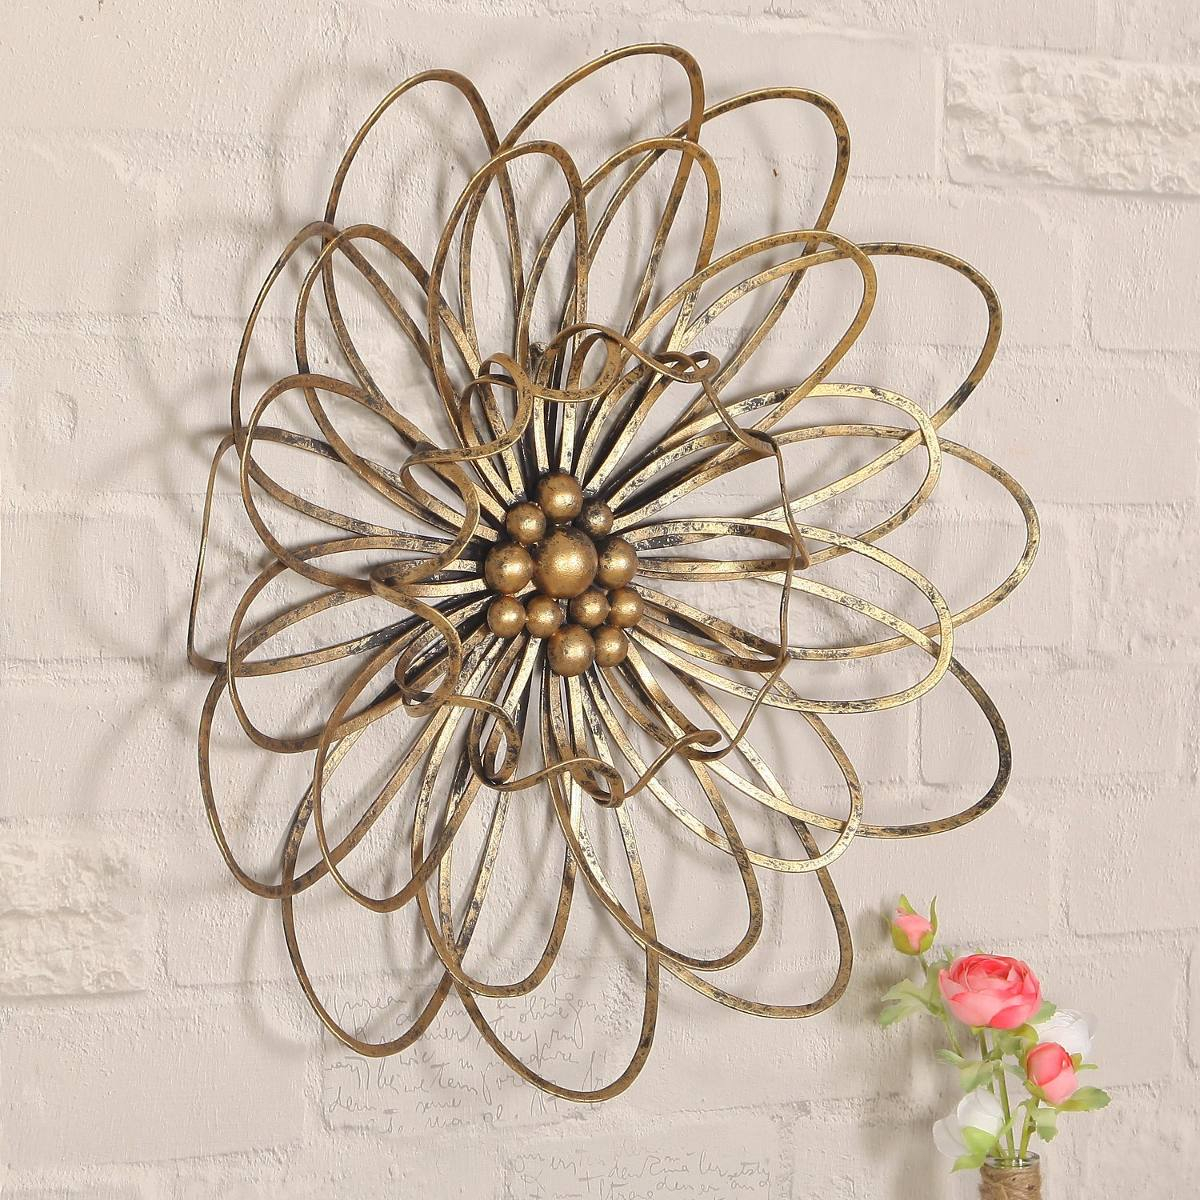 Adeco Dn0018 Flower Urban Design Metal Wall Decor For Natur with Flower Urban Design Metal Wall Decor (Image 5 of 30)